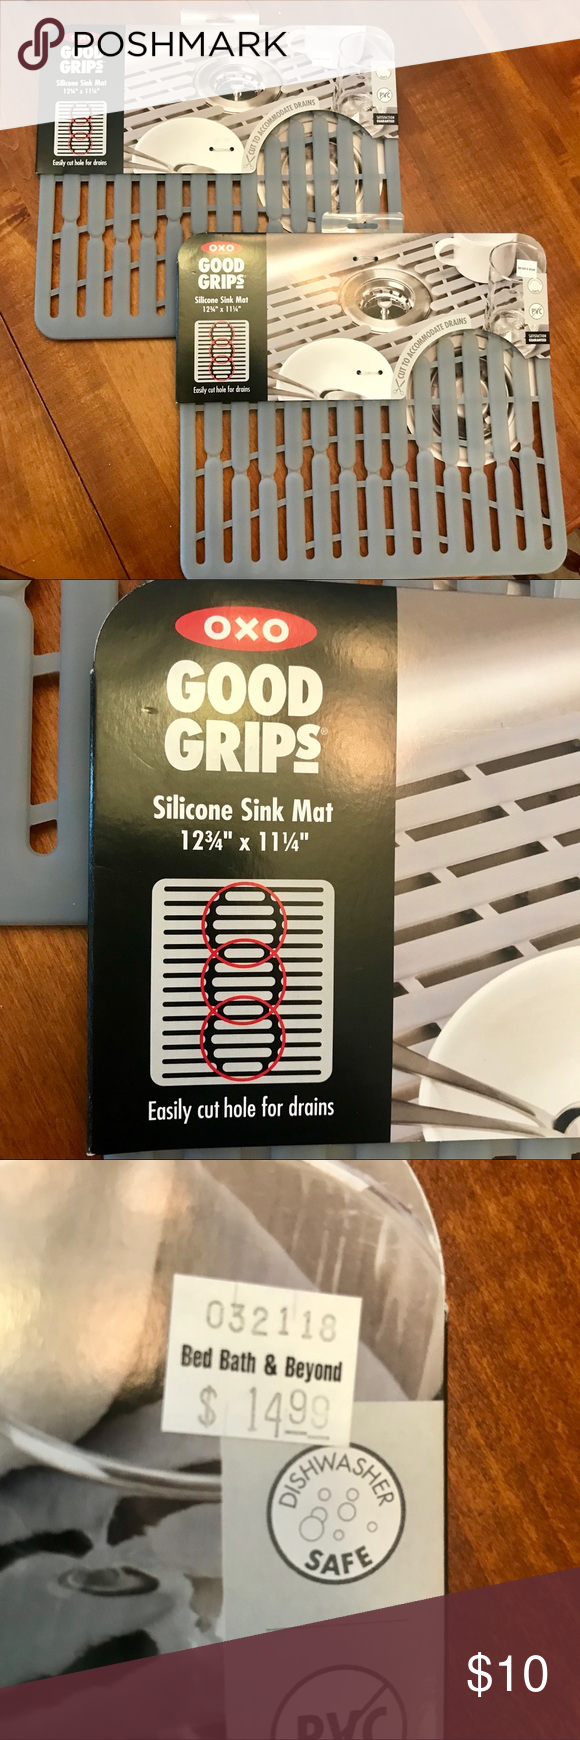 Good Grips Silicone Sink Mats 2 Brand New 15 Each At Bed Bath